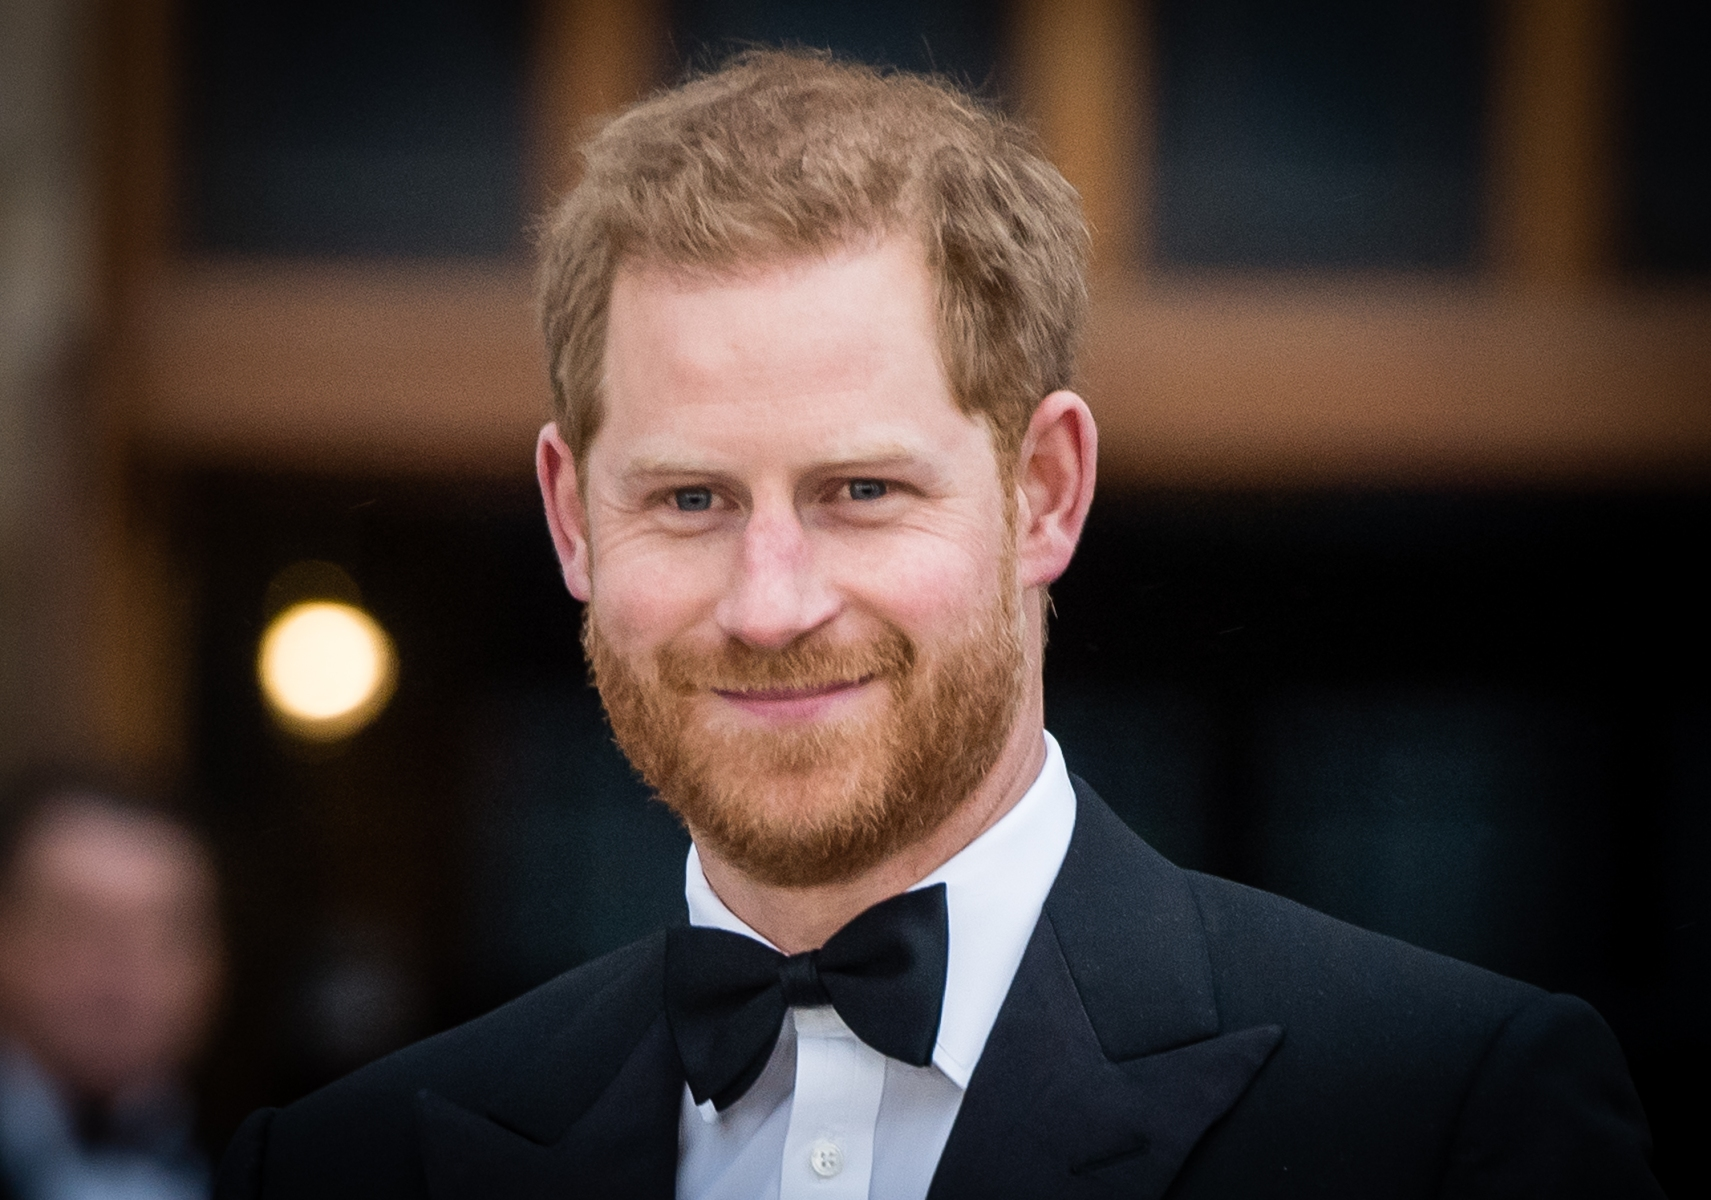 Prince Harry Wants to See